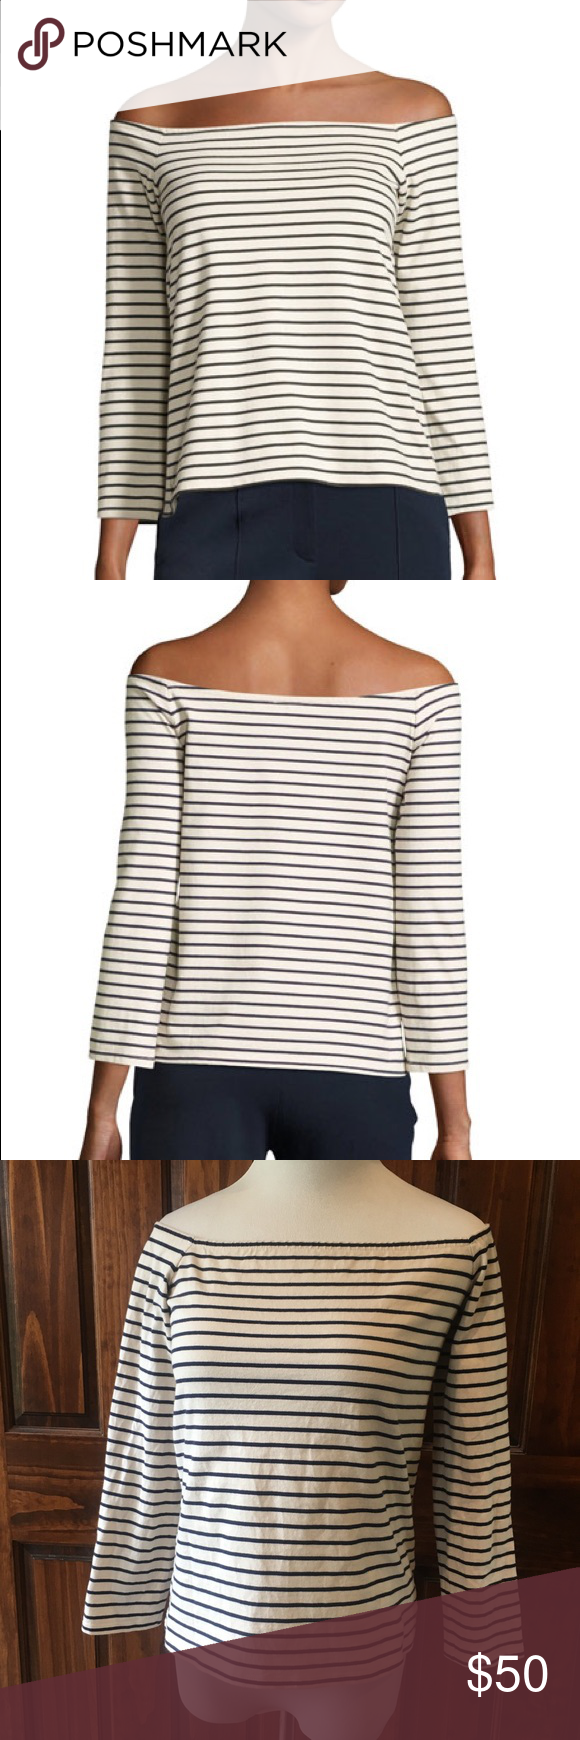 28ab081e6b38 Theory Aprine Classic Stripe Off-The-Shoulder Top Theory